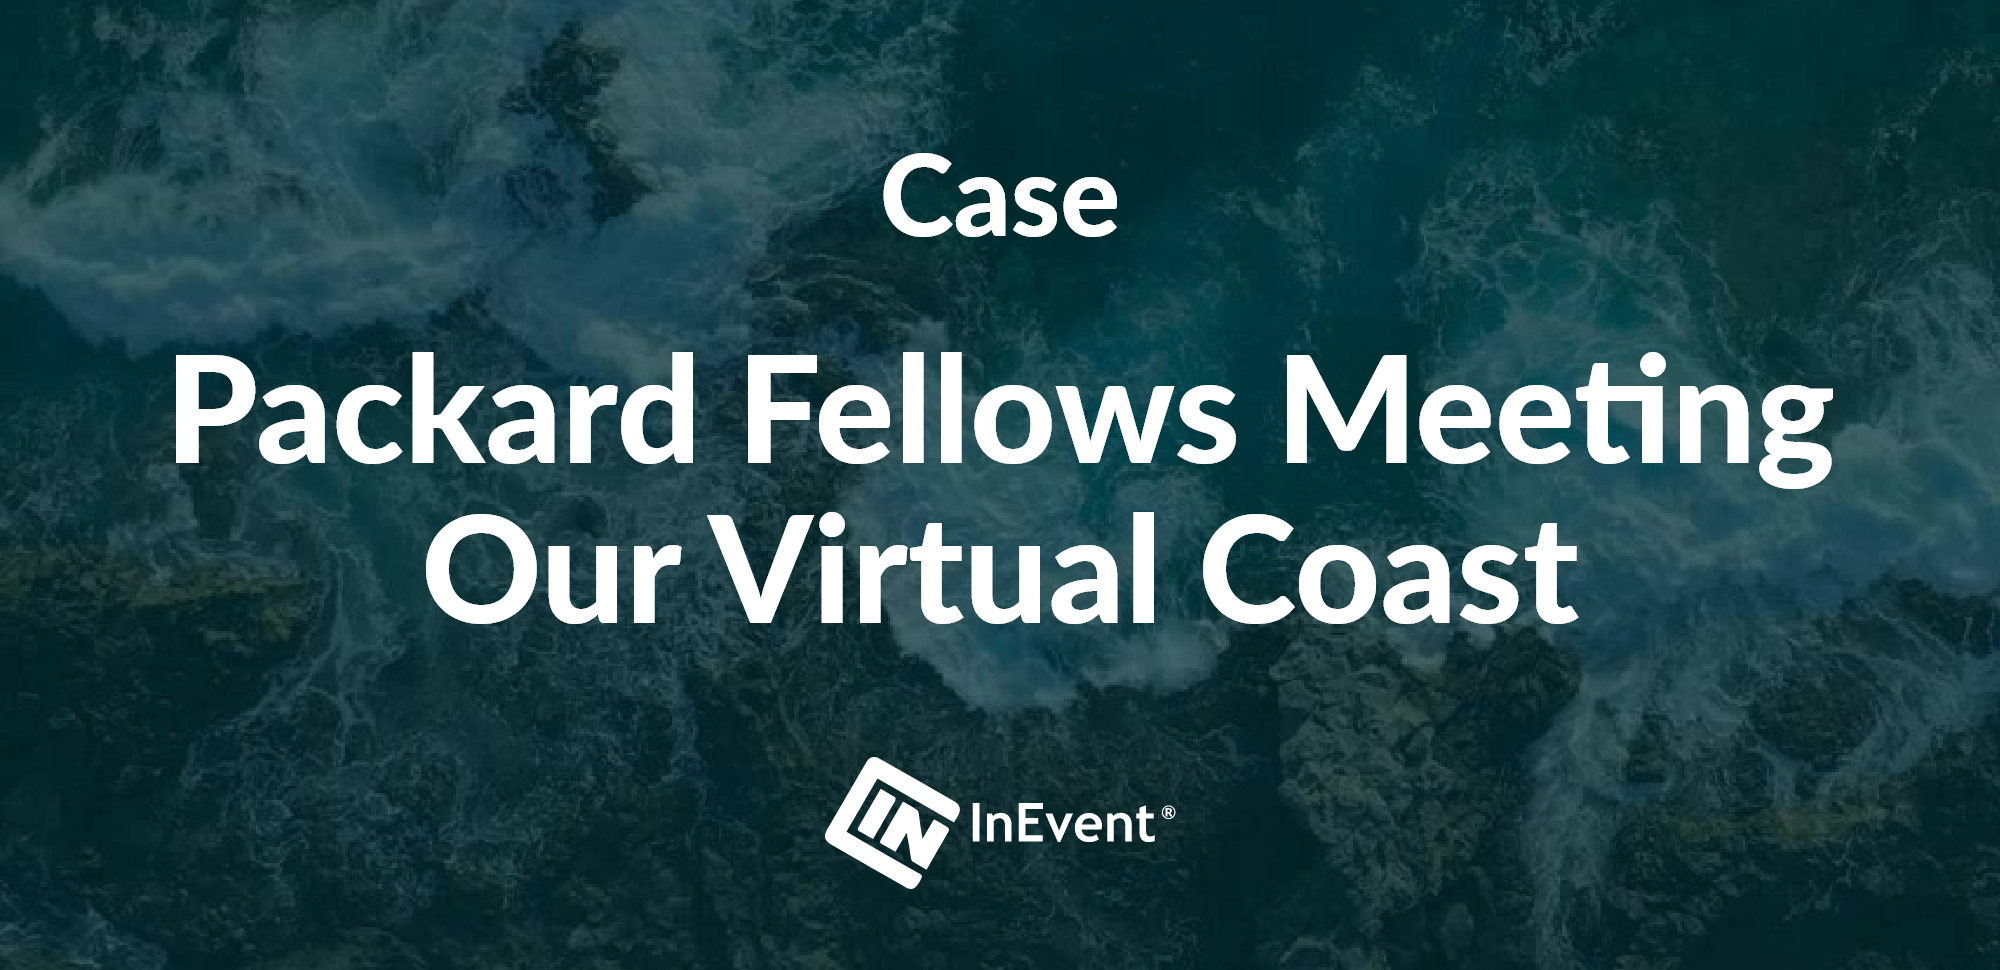 Packard Fellows Meeting<br>Our Virtual Coast